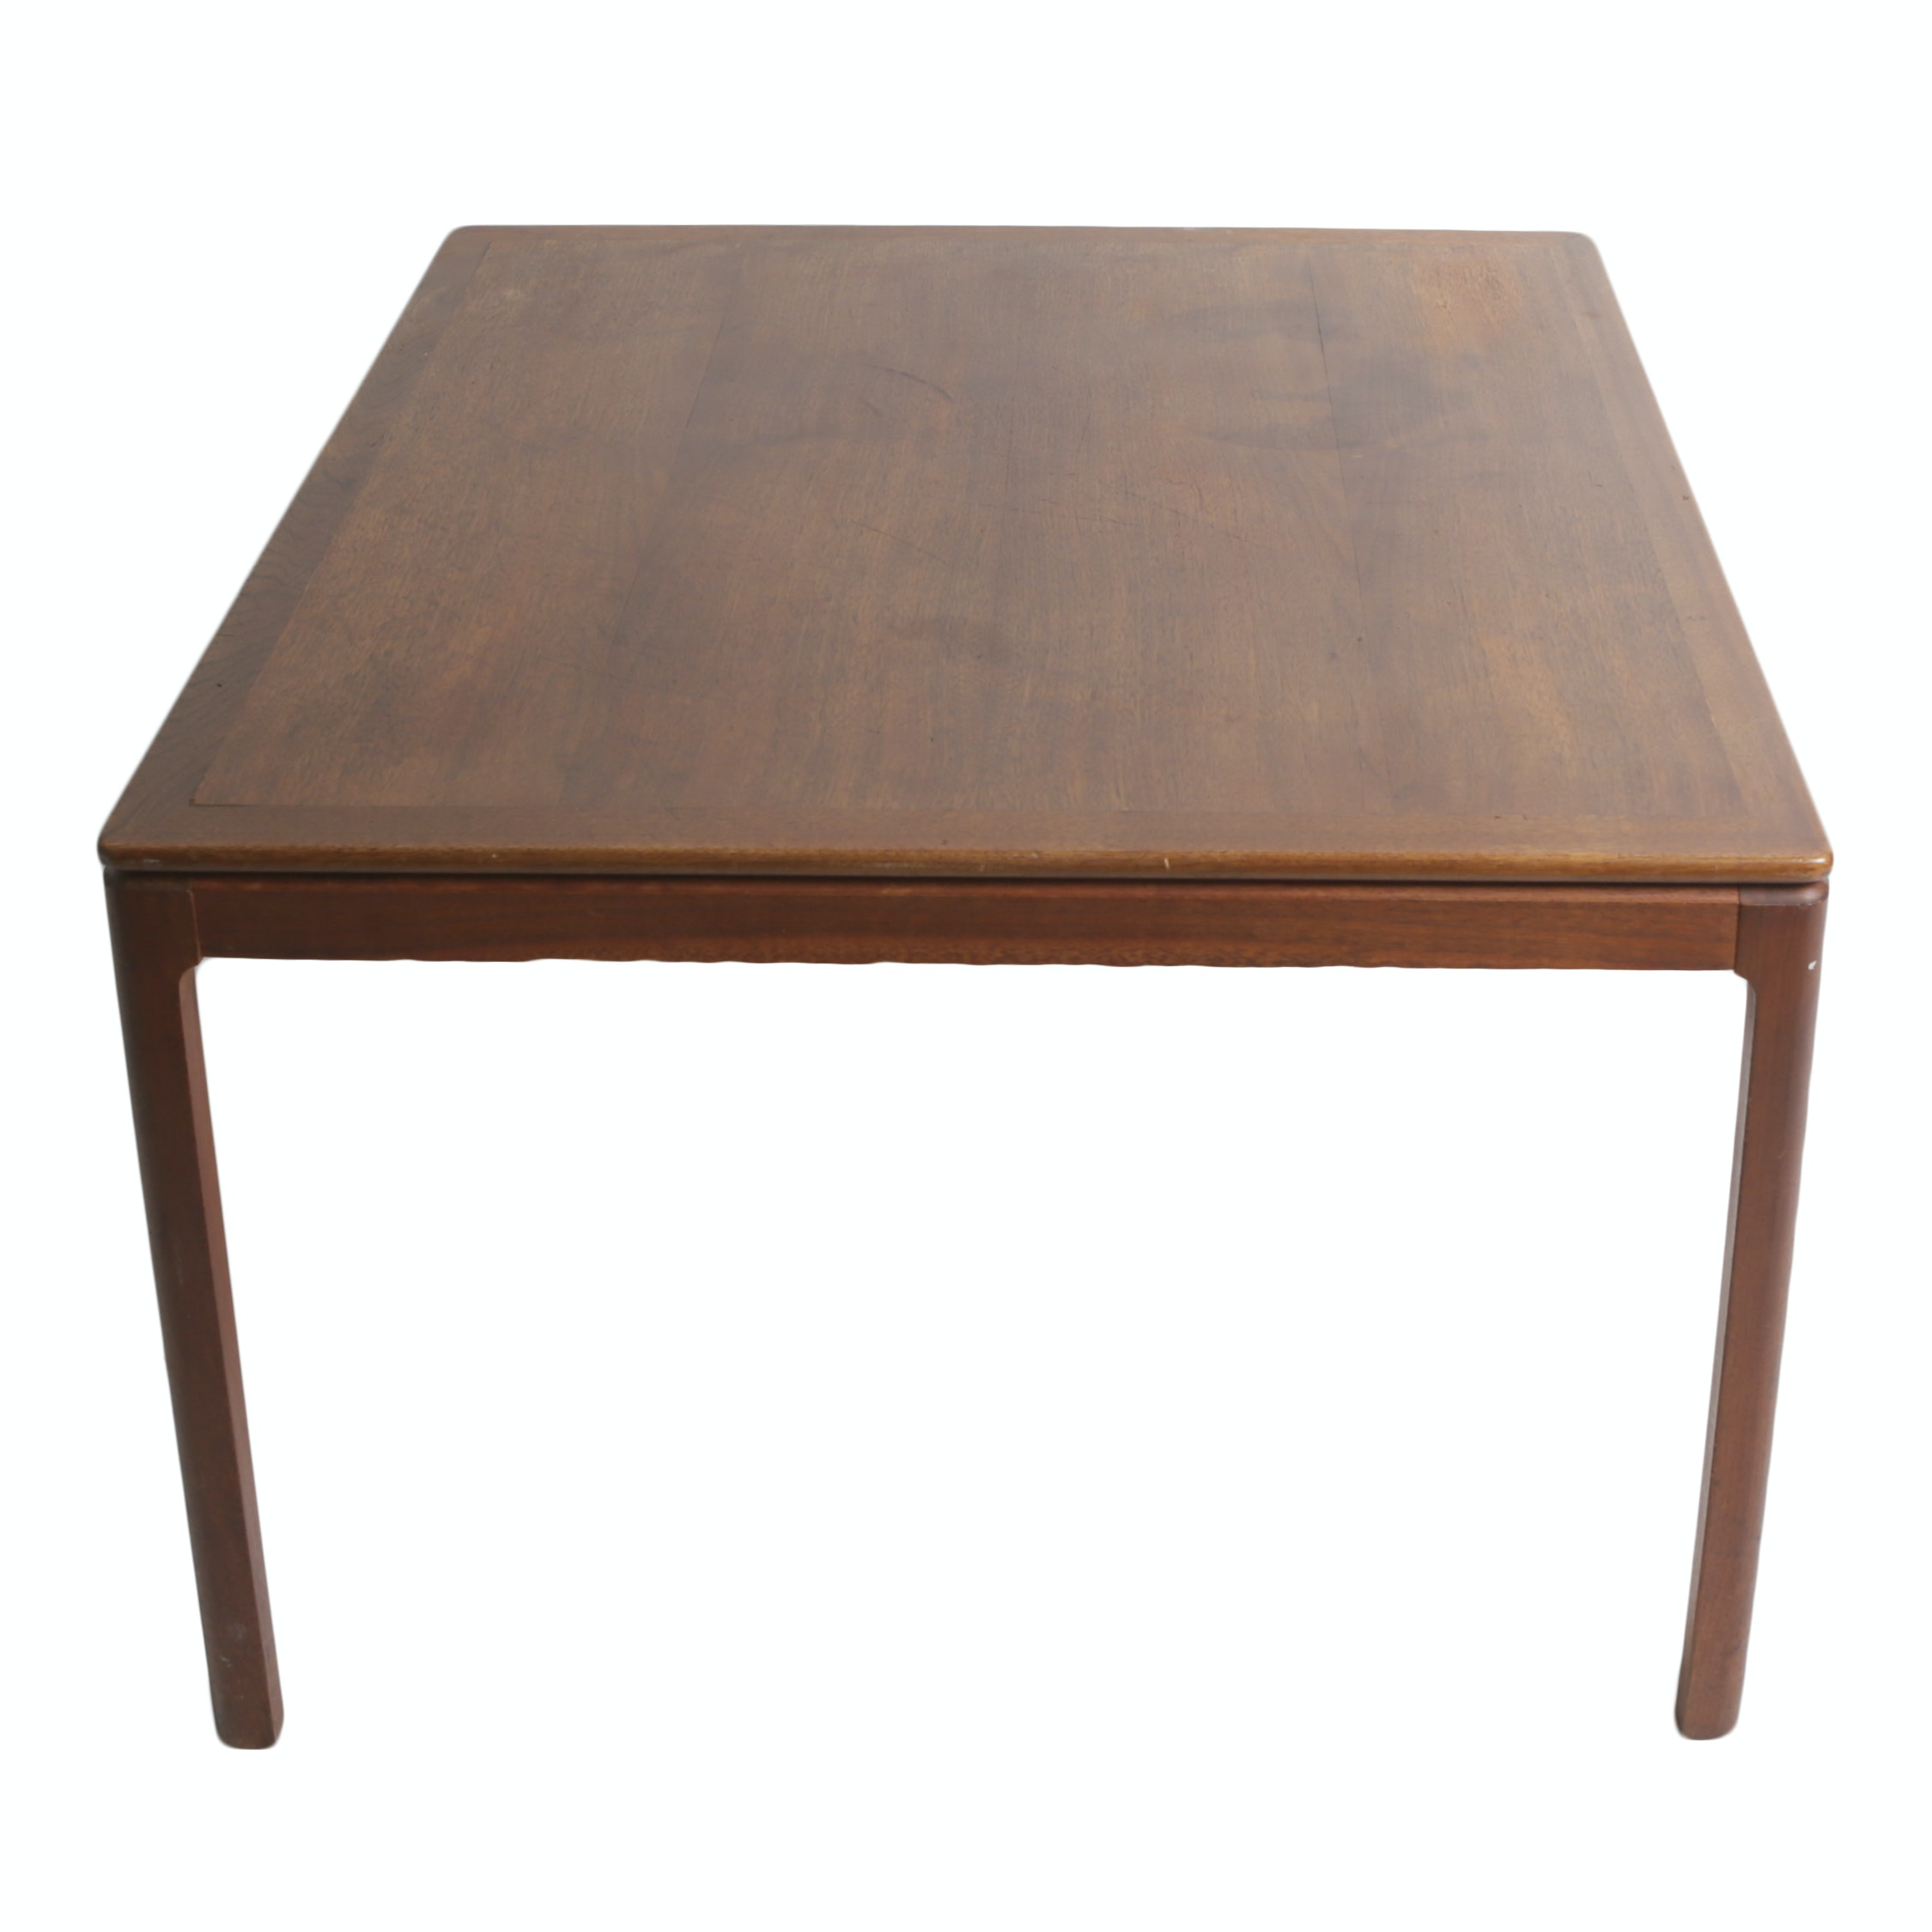 Mid Century Modern Danish Teak Coffee or Side Table